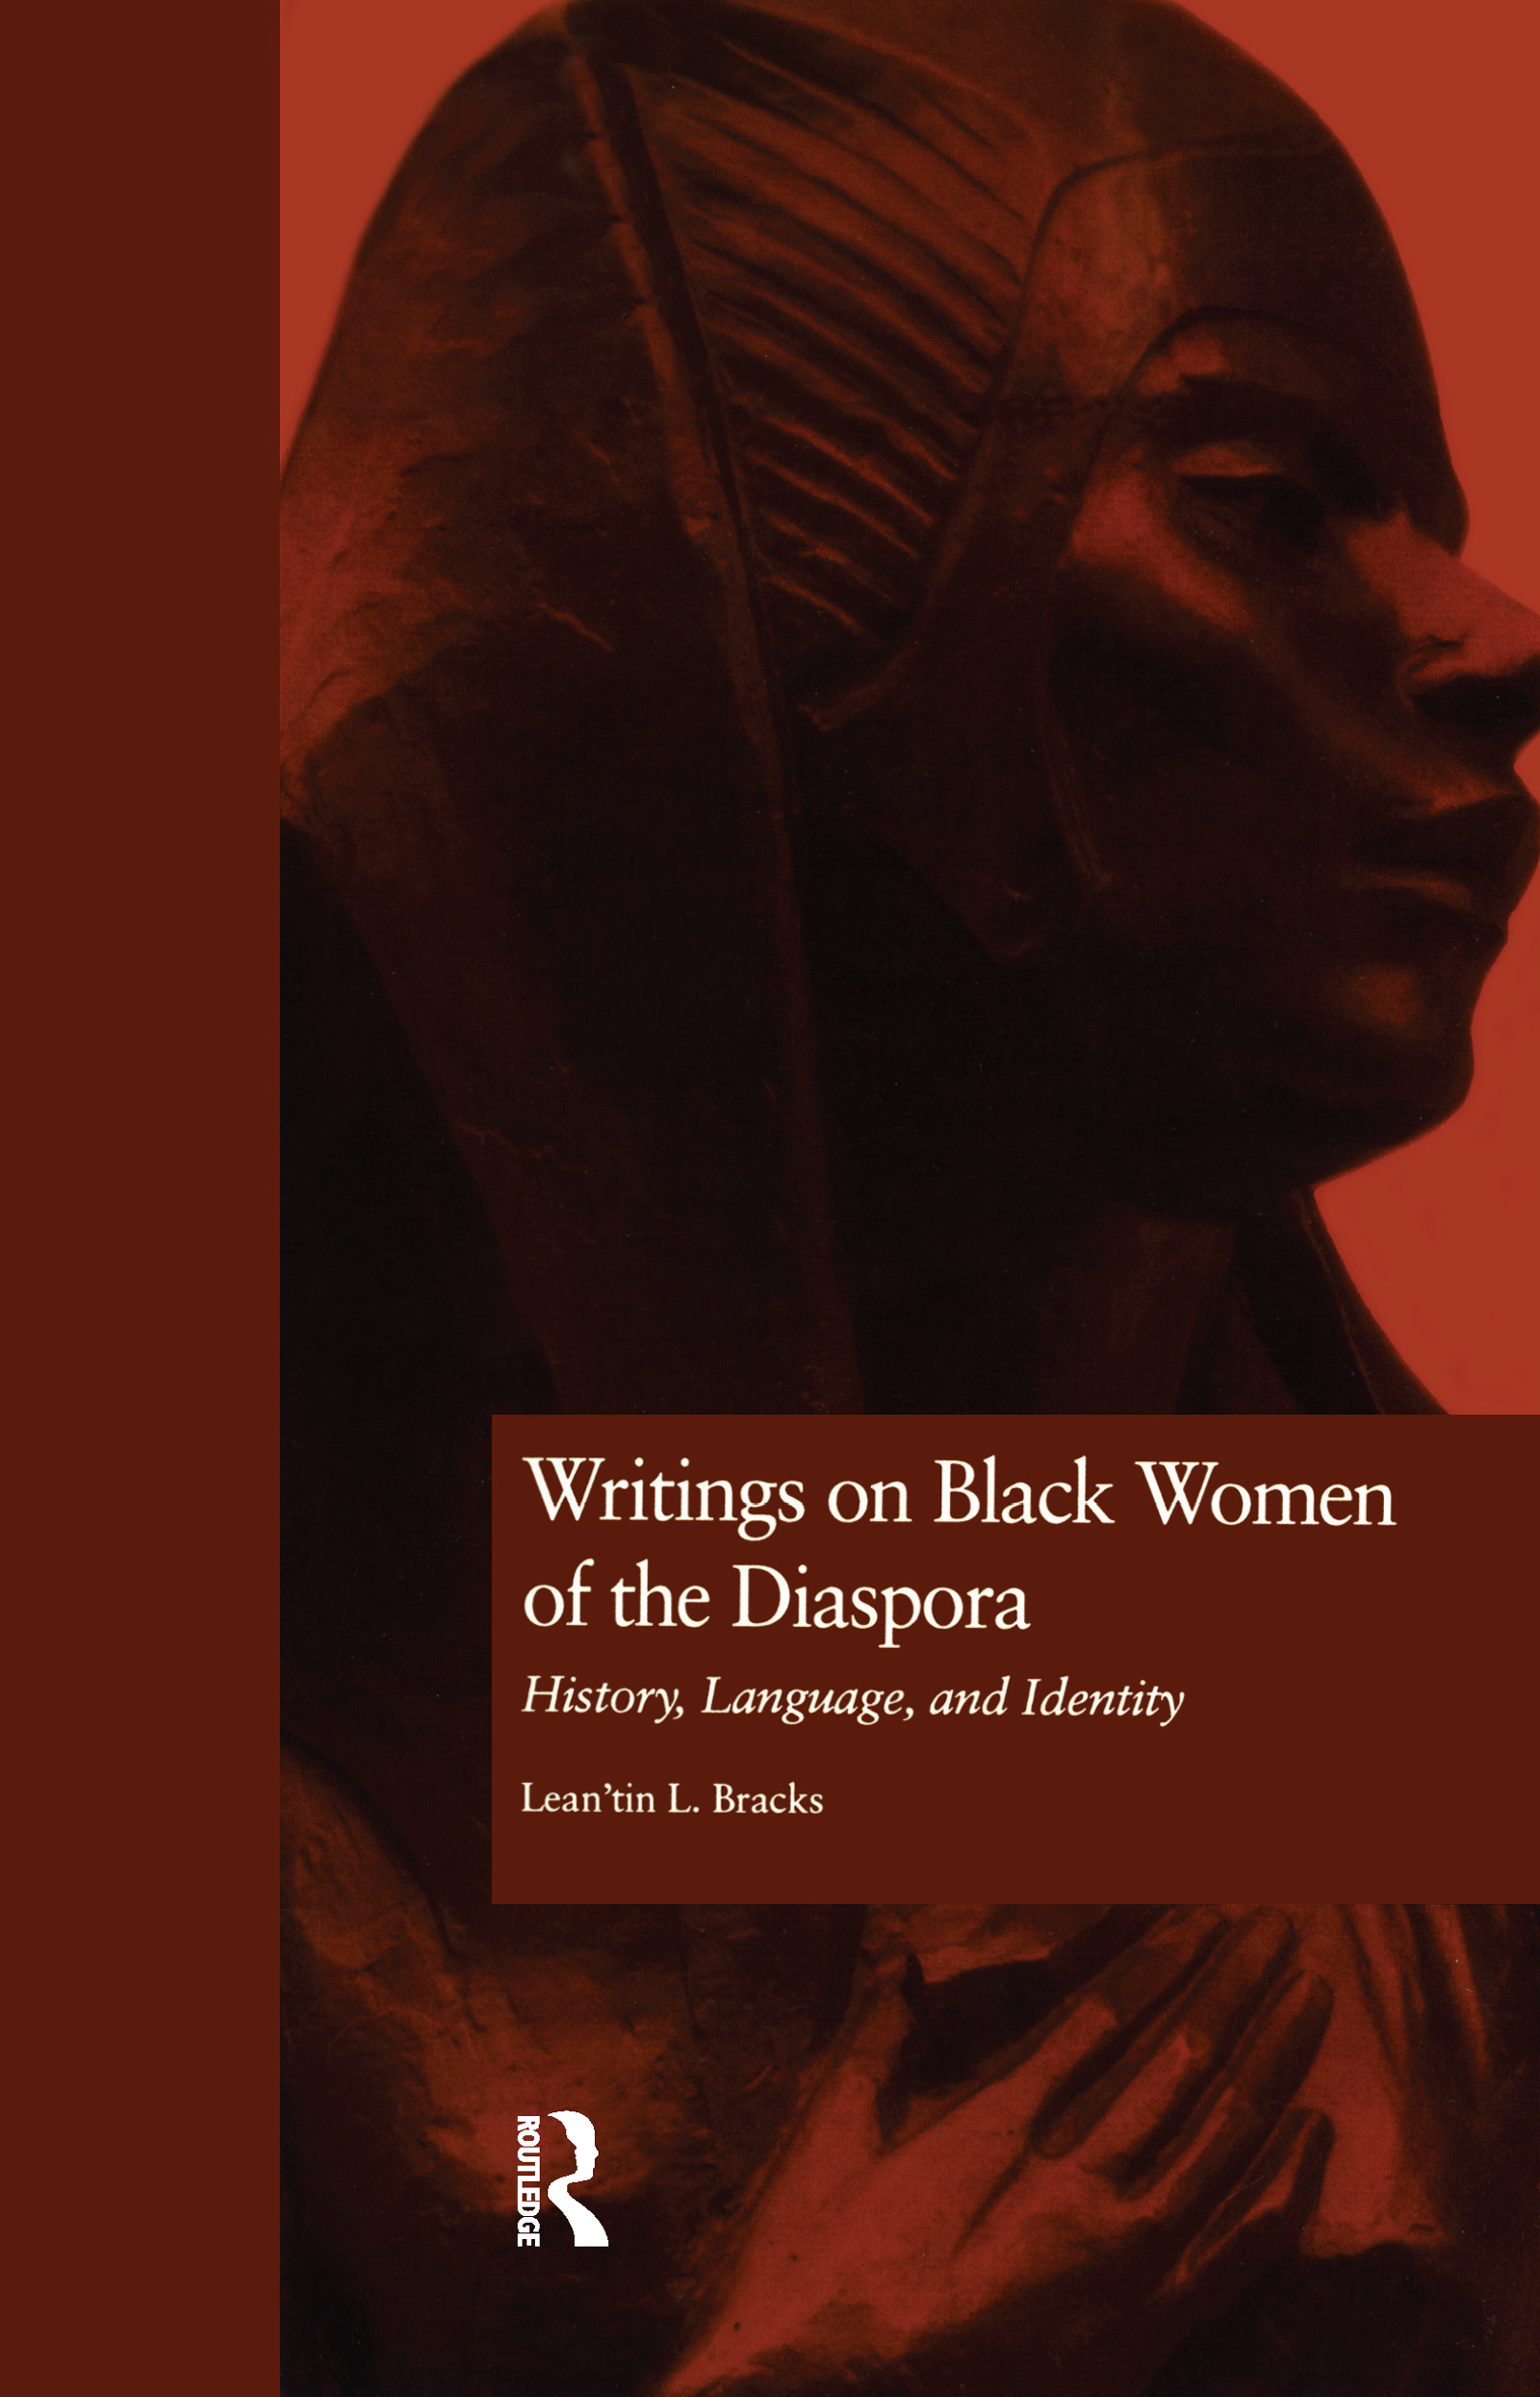 Writings on Black Women of the Diaspora: History, Language, and Identity book cover